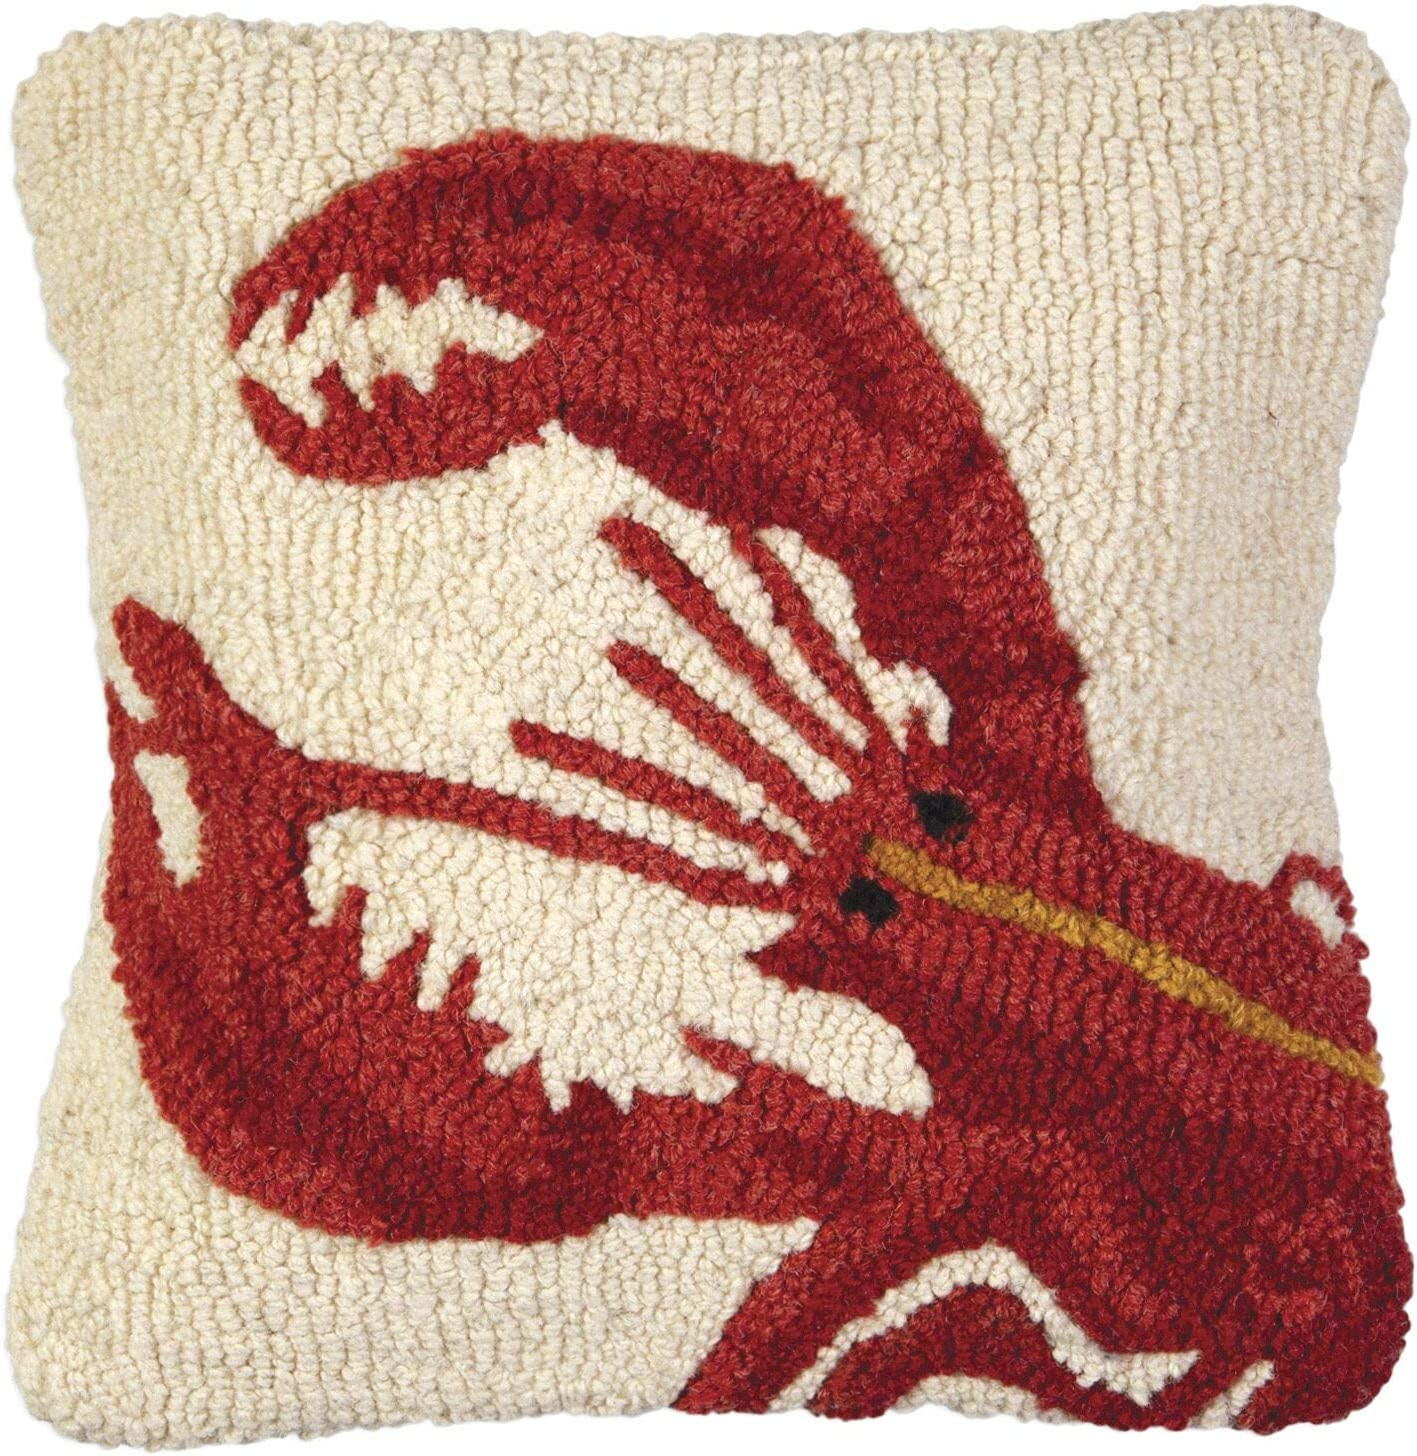 Chandler 4 Corners Artist Designed Red Lobster Hand Hooked Wool Decorative Throw Pillow 14 X 14 Home Kitchen